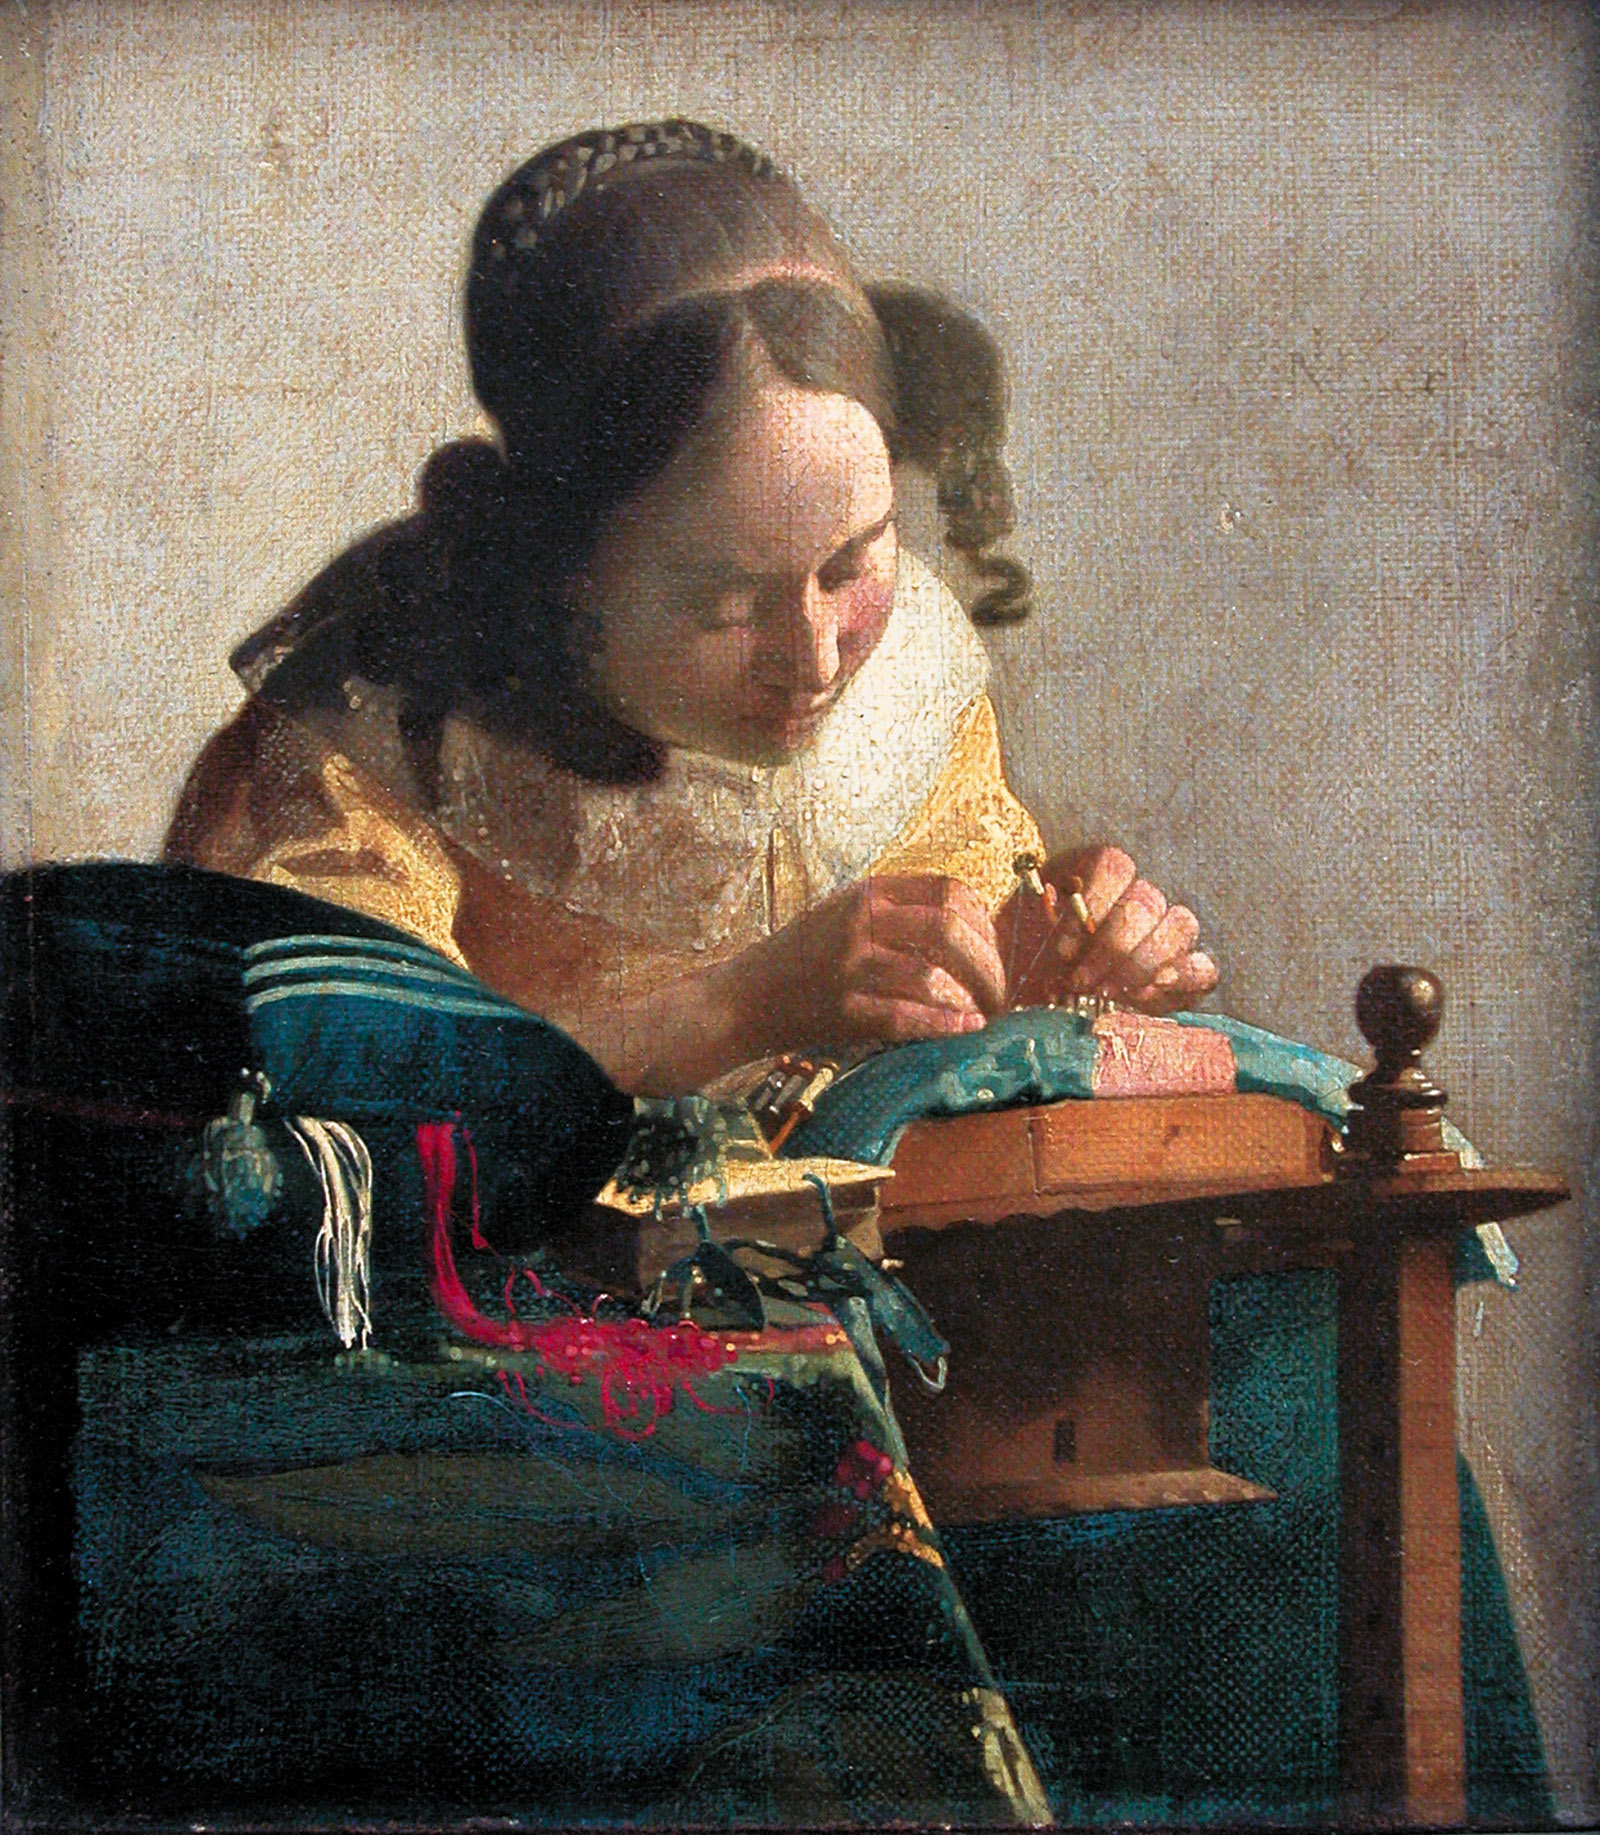 Johannes Vermeer: The Lacemaker, 9 5/8 x 8 1/4 inches, circa 1669–1670